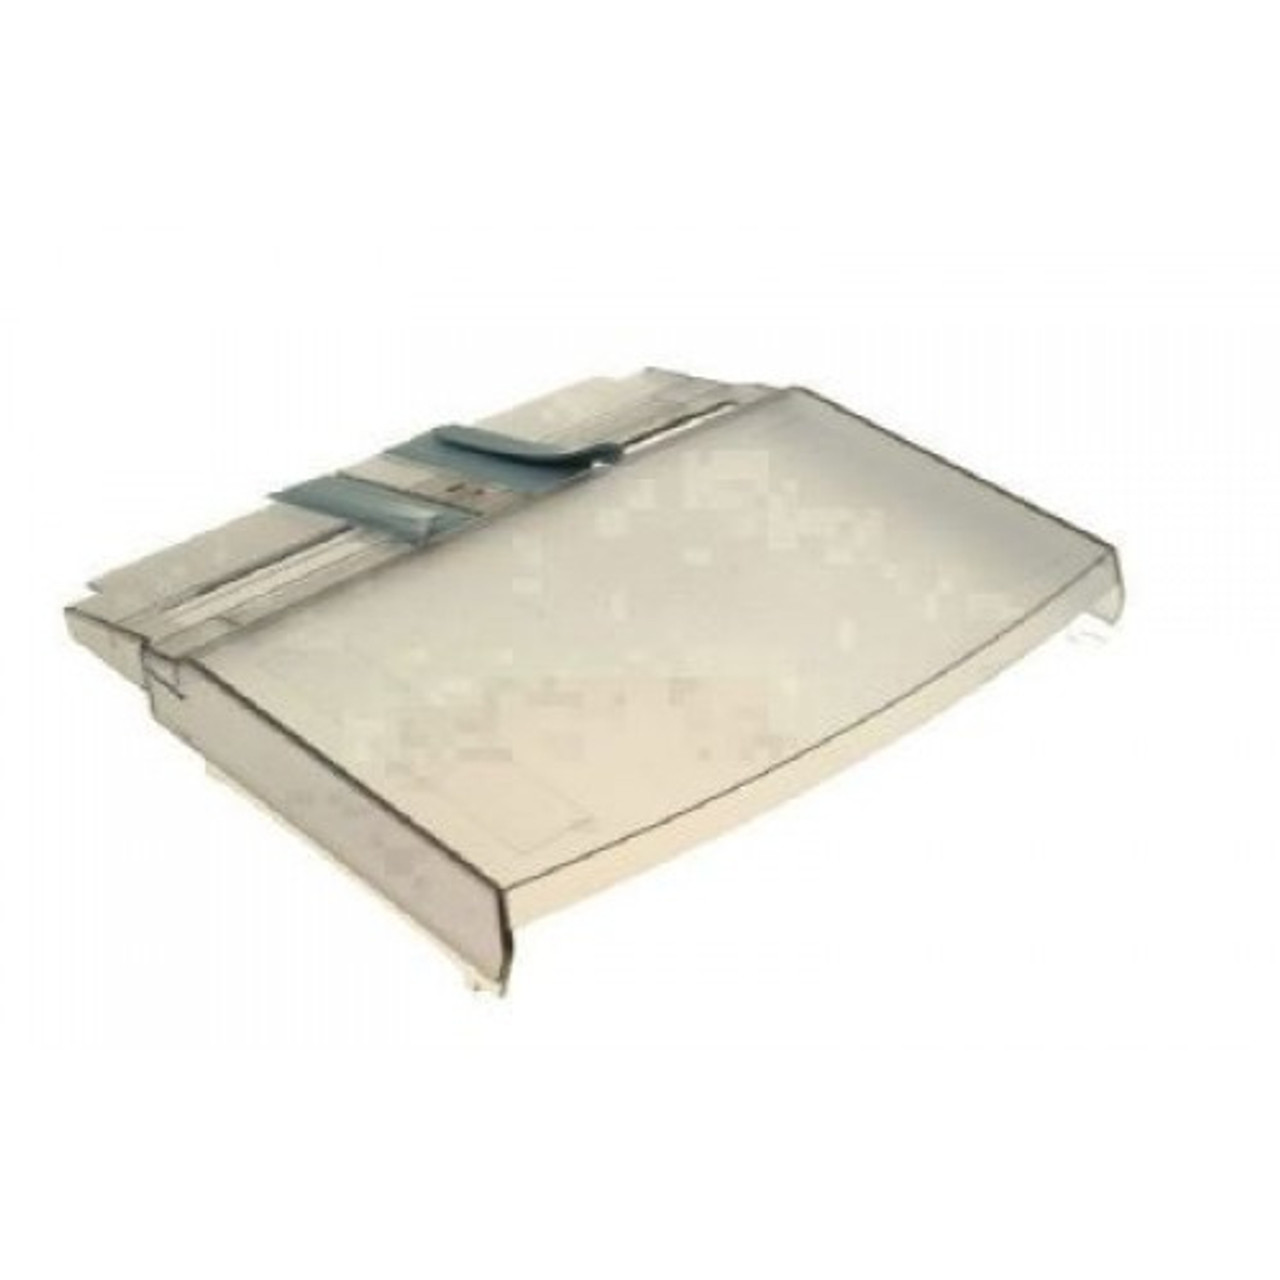 HP 1200 Paper Pickup Tray Cover